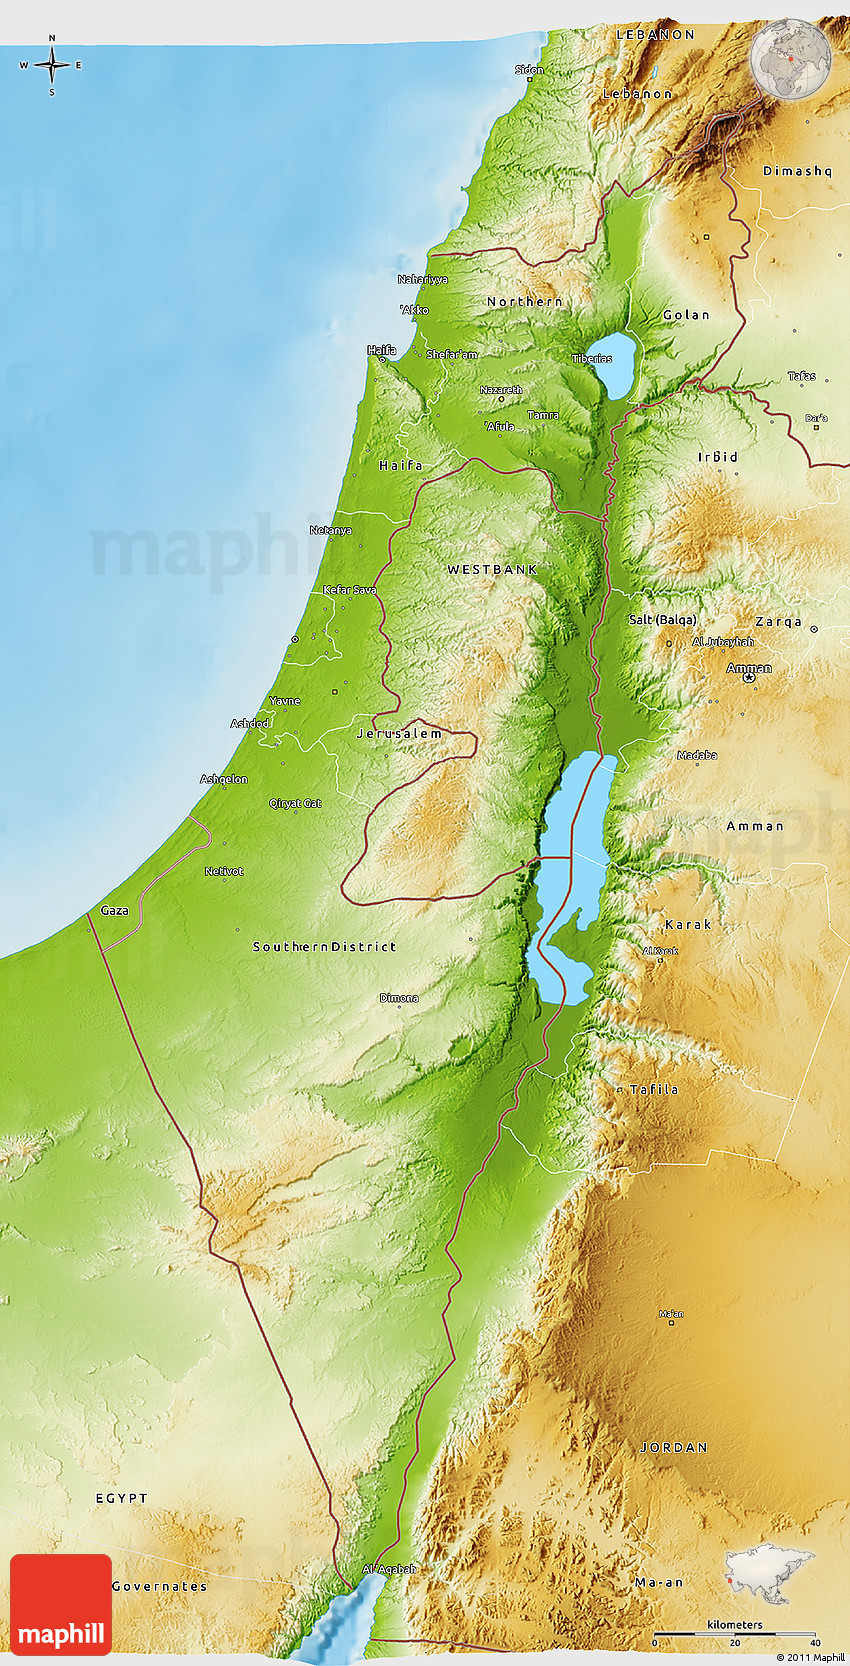 topographic map of ancient israel Physical 3d Map Of Israel